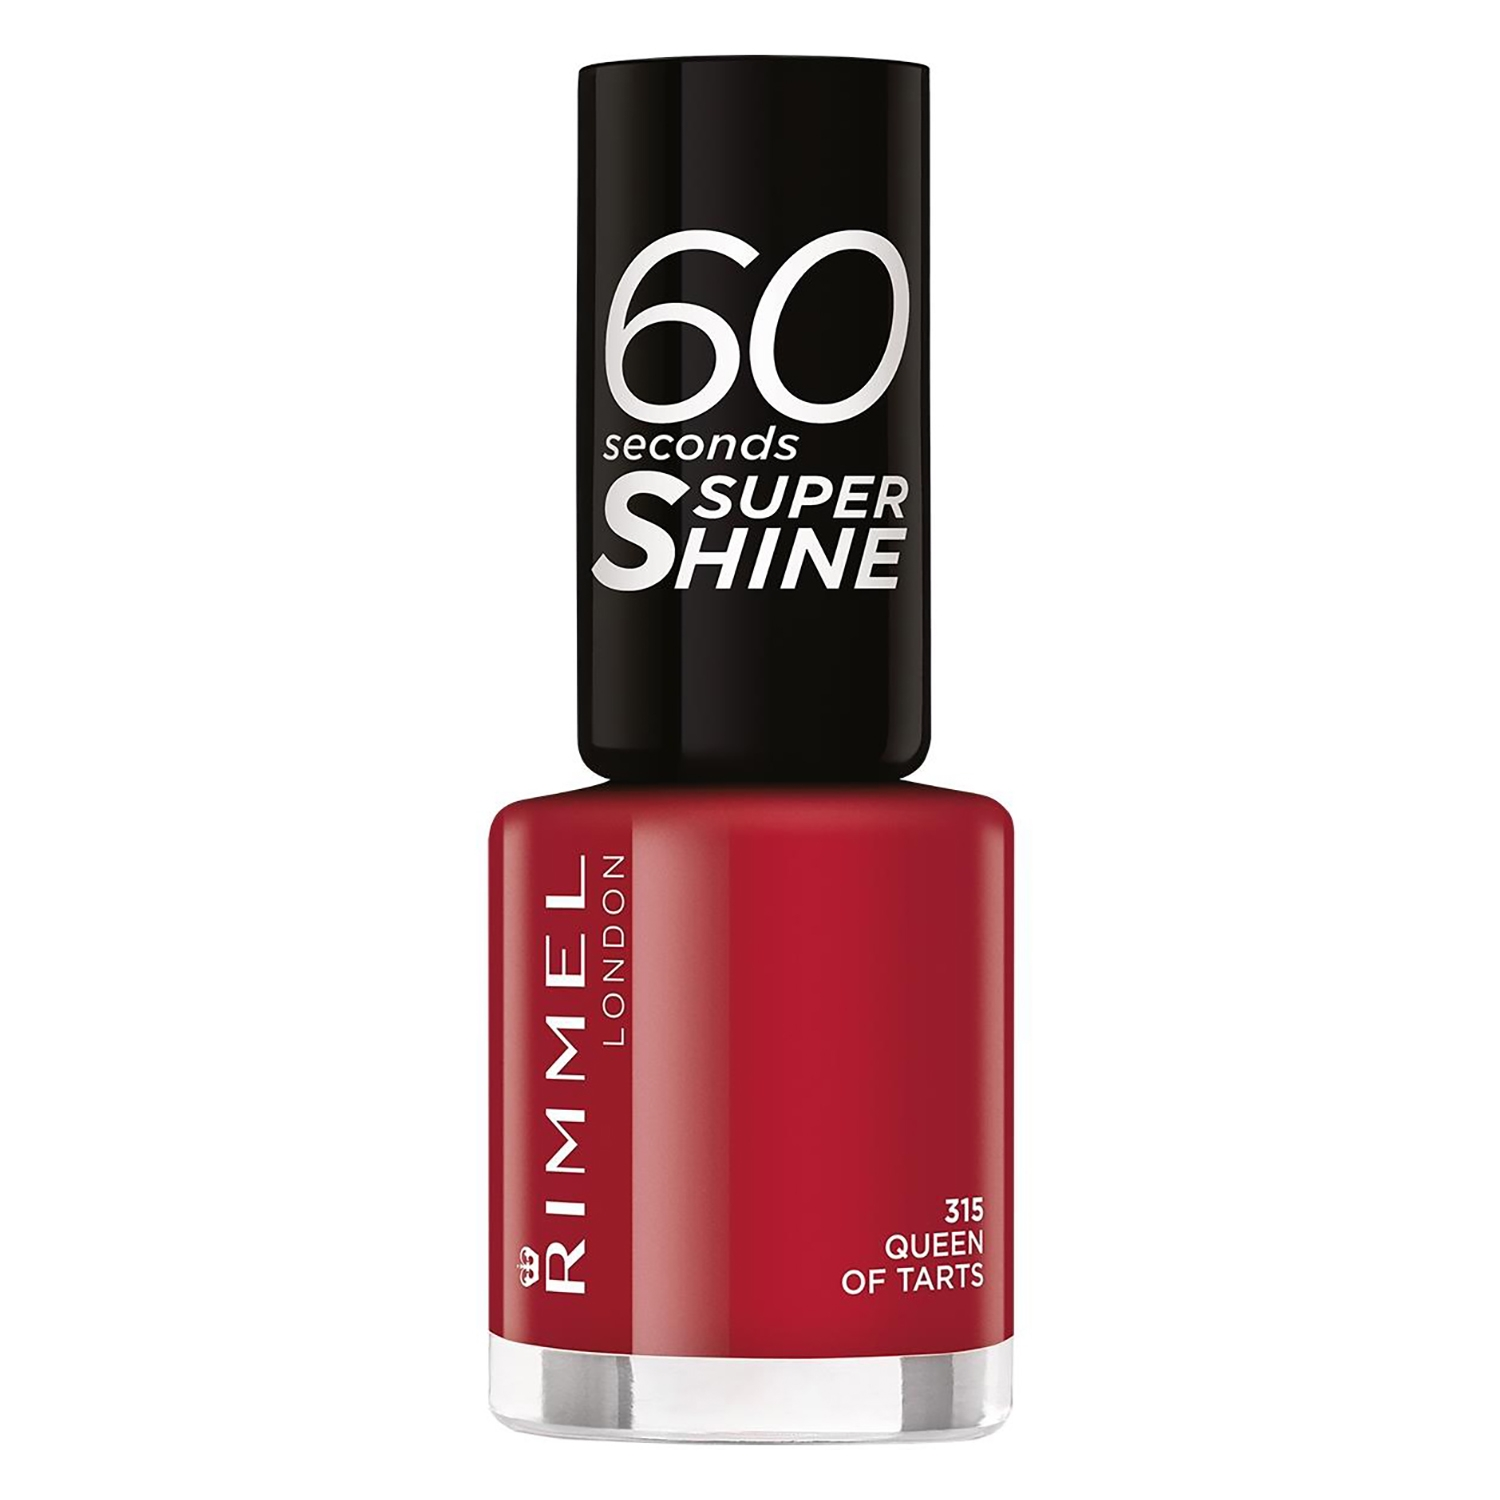 Laca de uñas 60 seconds super shine nº 315 Queen of Tarts Rimmel 1 ud.